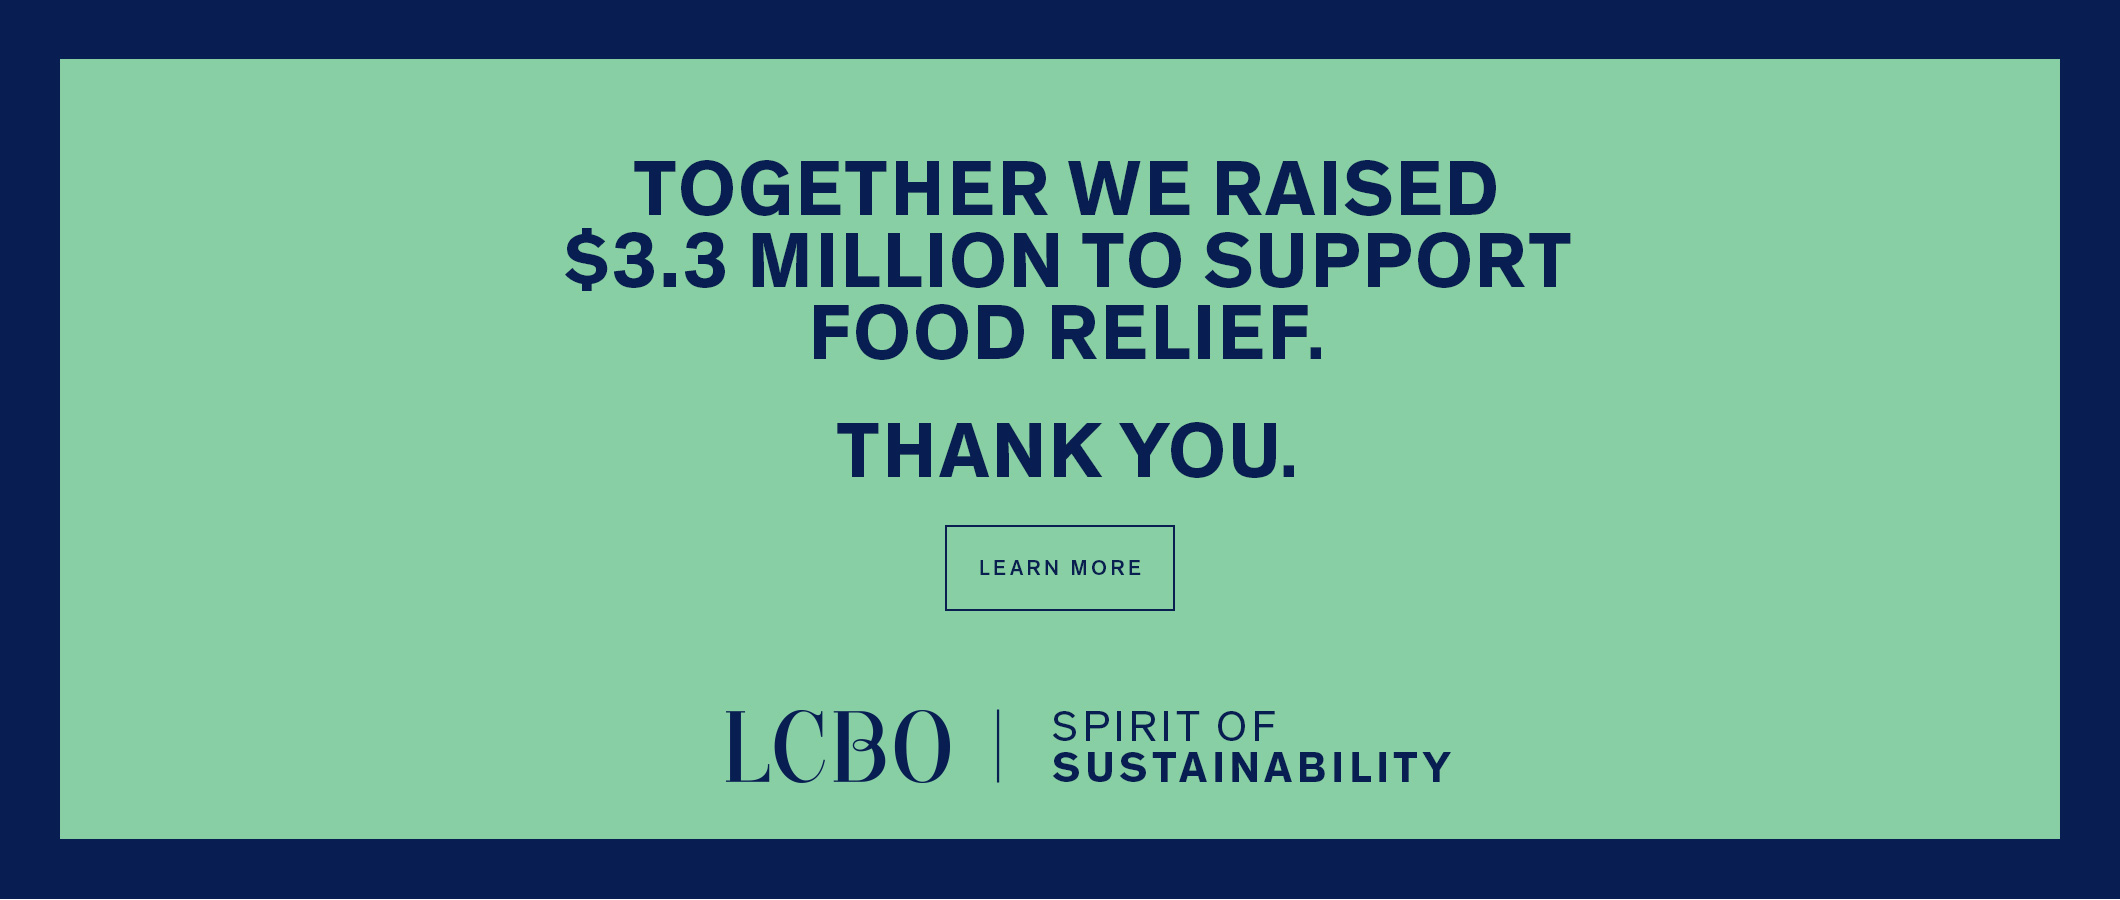 Together we raised $3.3 million to support food relief.  Thank you.  LCBO Spirits of Suitainability